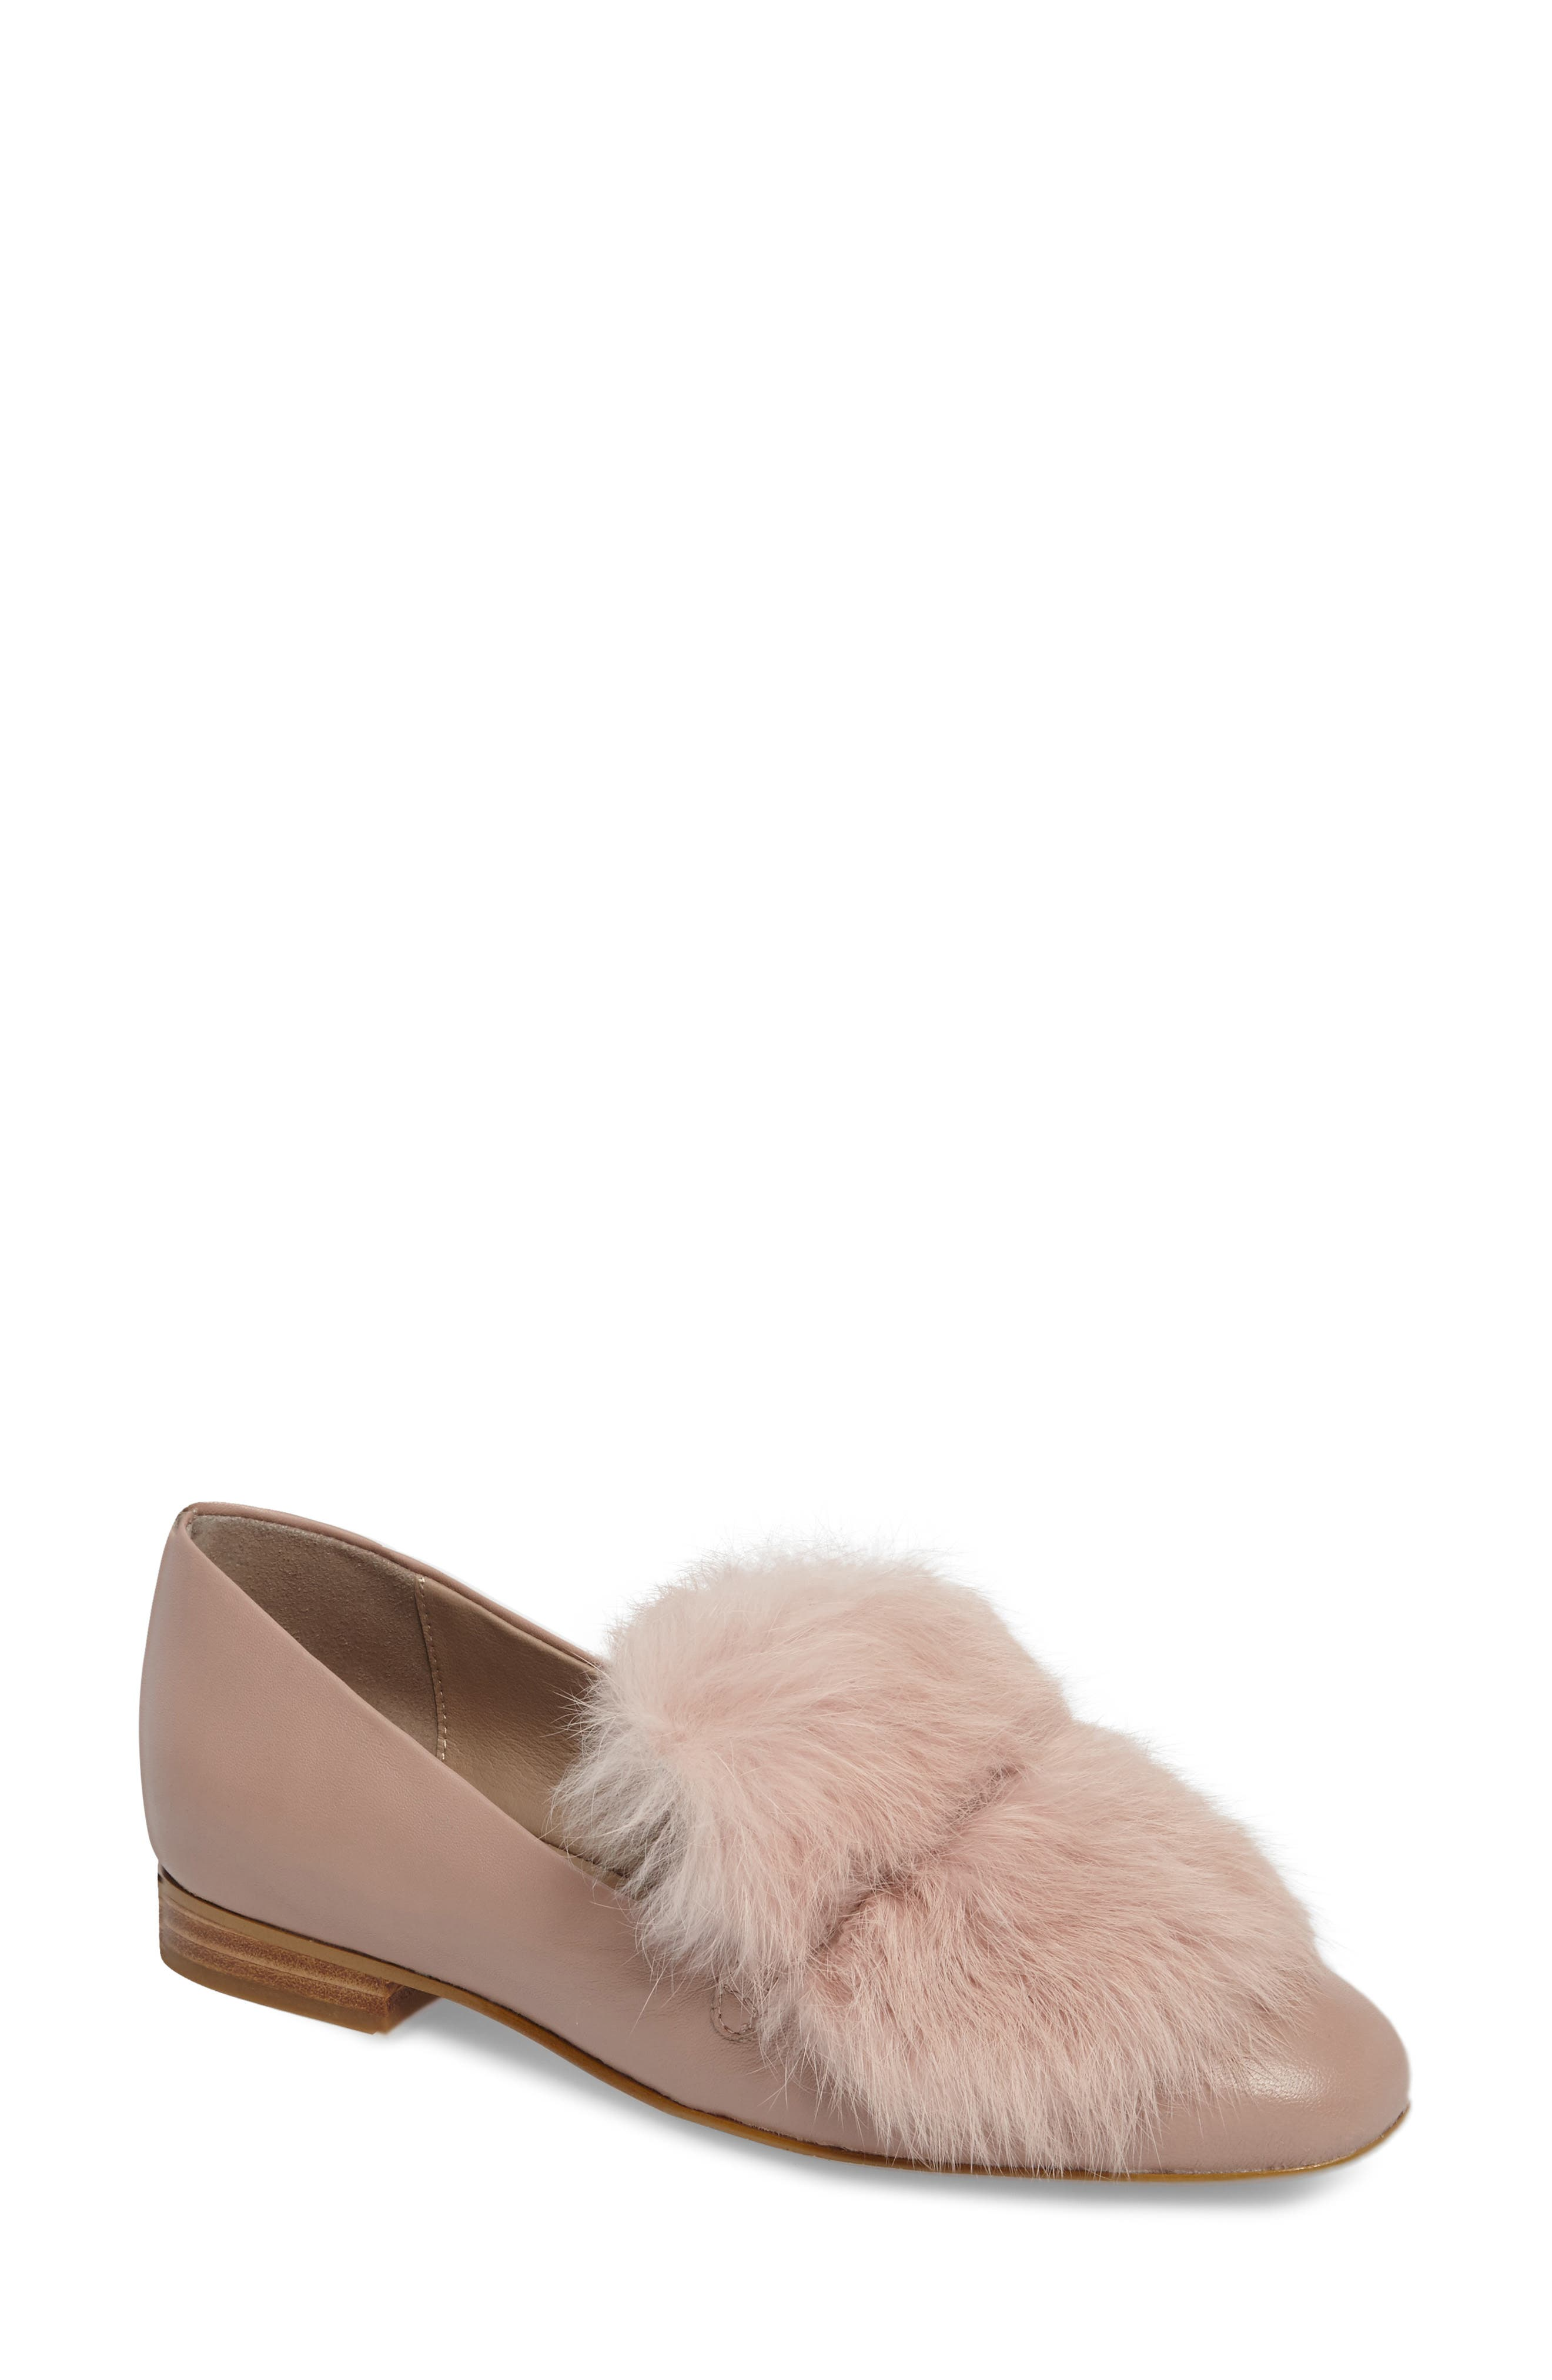 Donald J Pliner Lillian Genuine Rabbit Fur Loafer (Women)